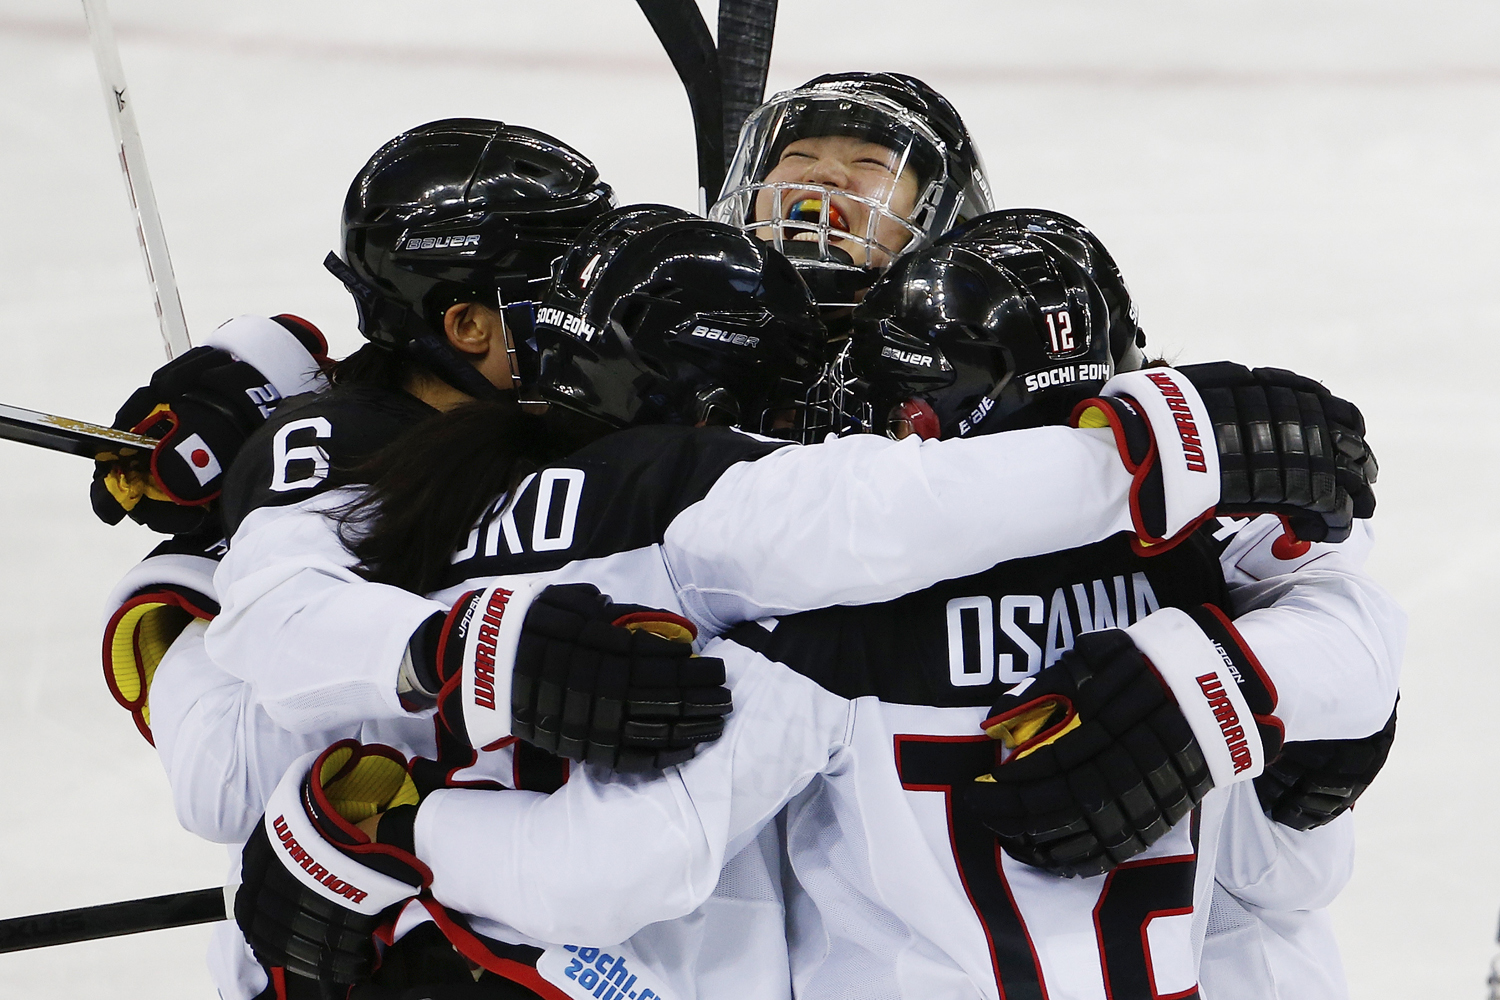 Team Japan celebrates their second goal against Russia during the 2014 Winter Olympics women's ice hockey game at Shayba Arena Sunday, Feb. 16, 2014, in Sochi, Russia.